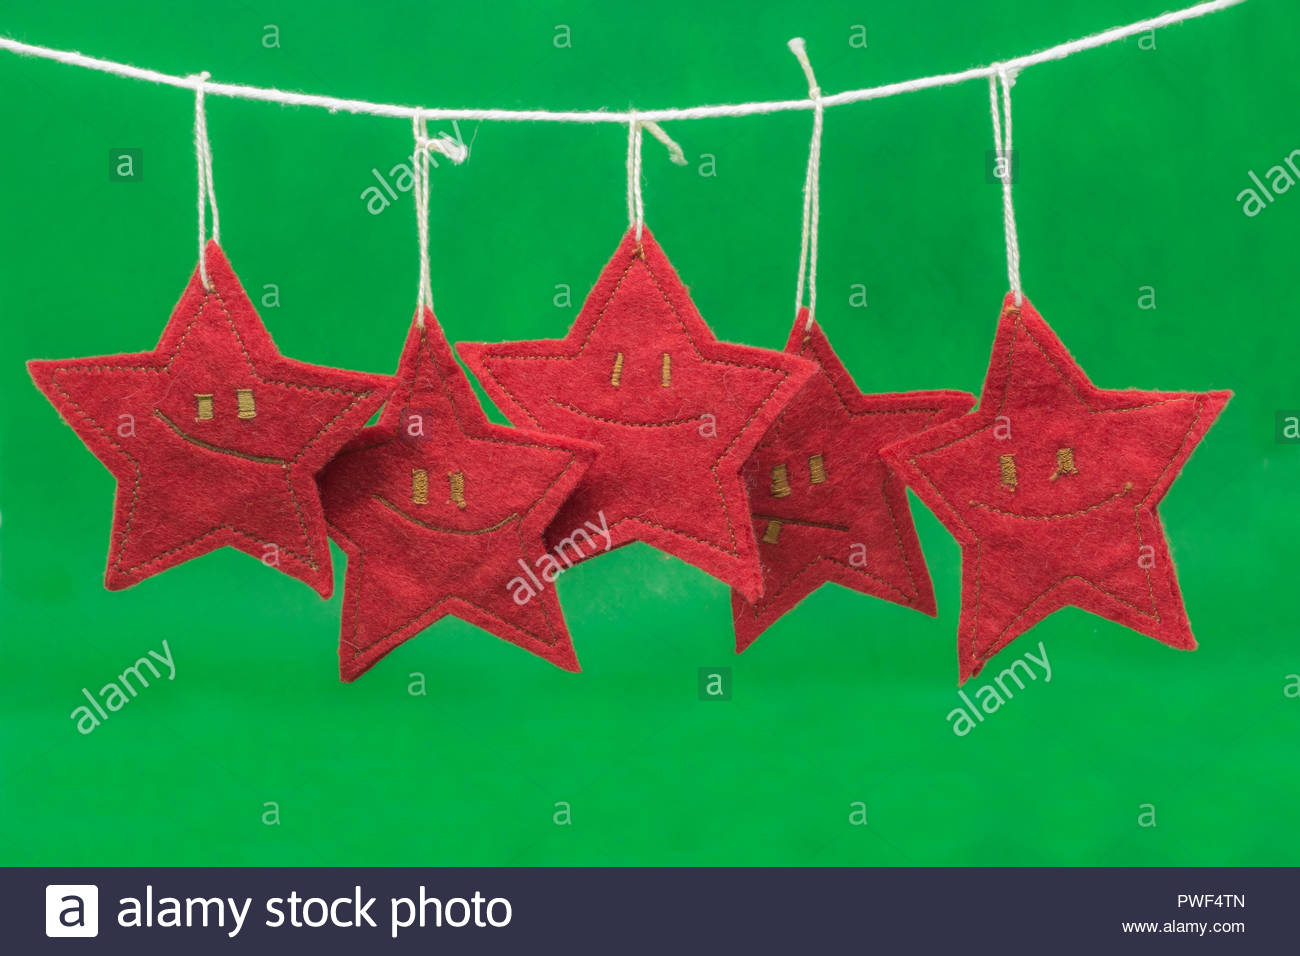 13e986e2ed5581 Weihnachten Made Easy Stockfotos   Weihnachten Made Easy Bilder - Alamy